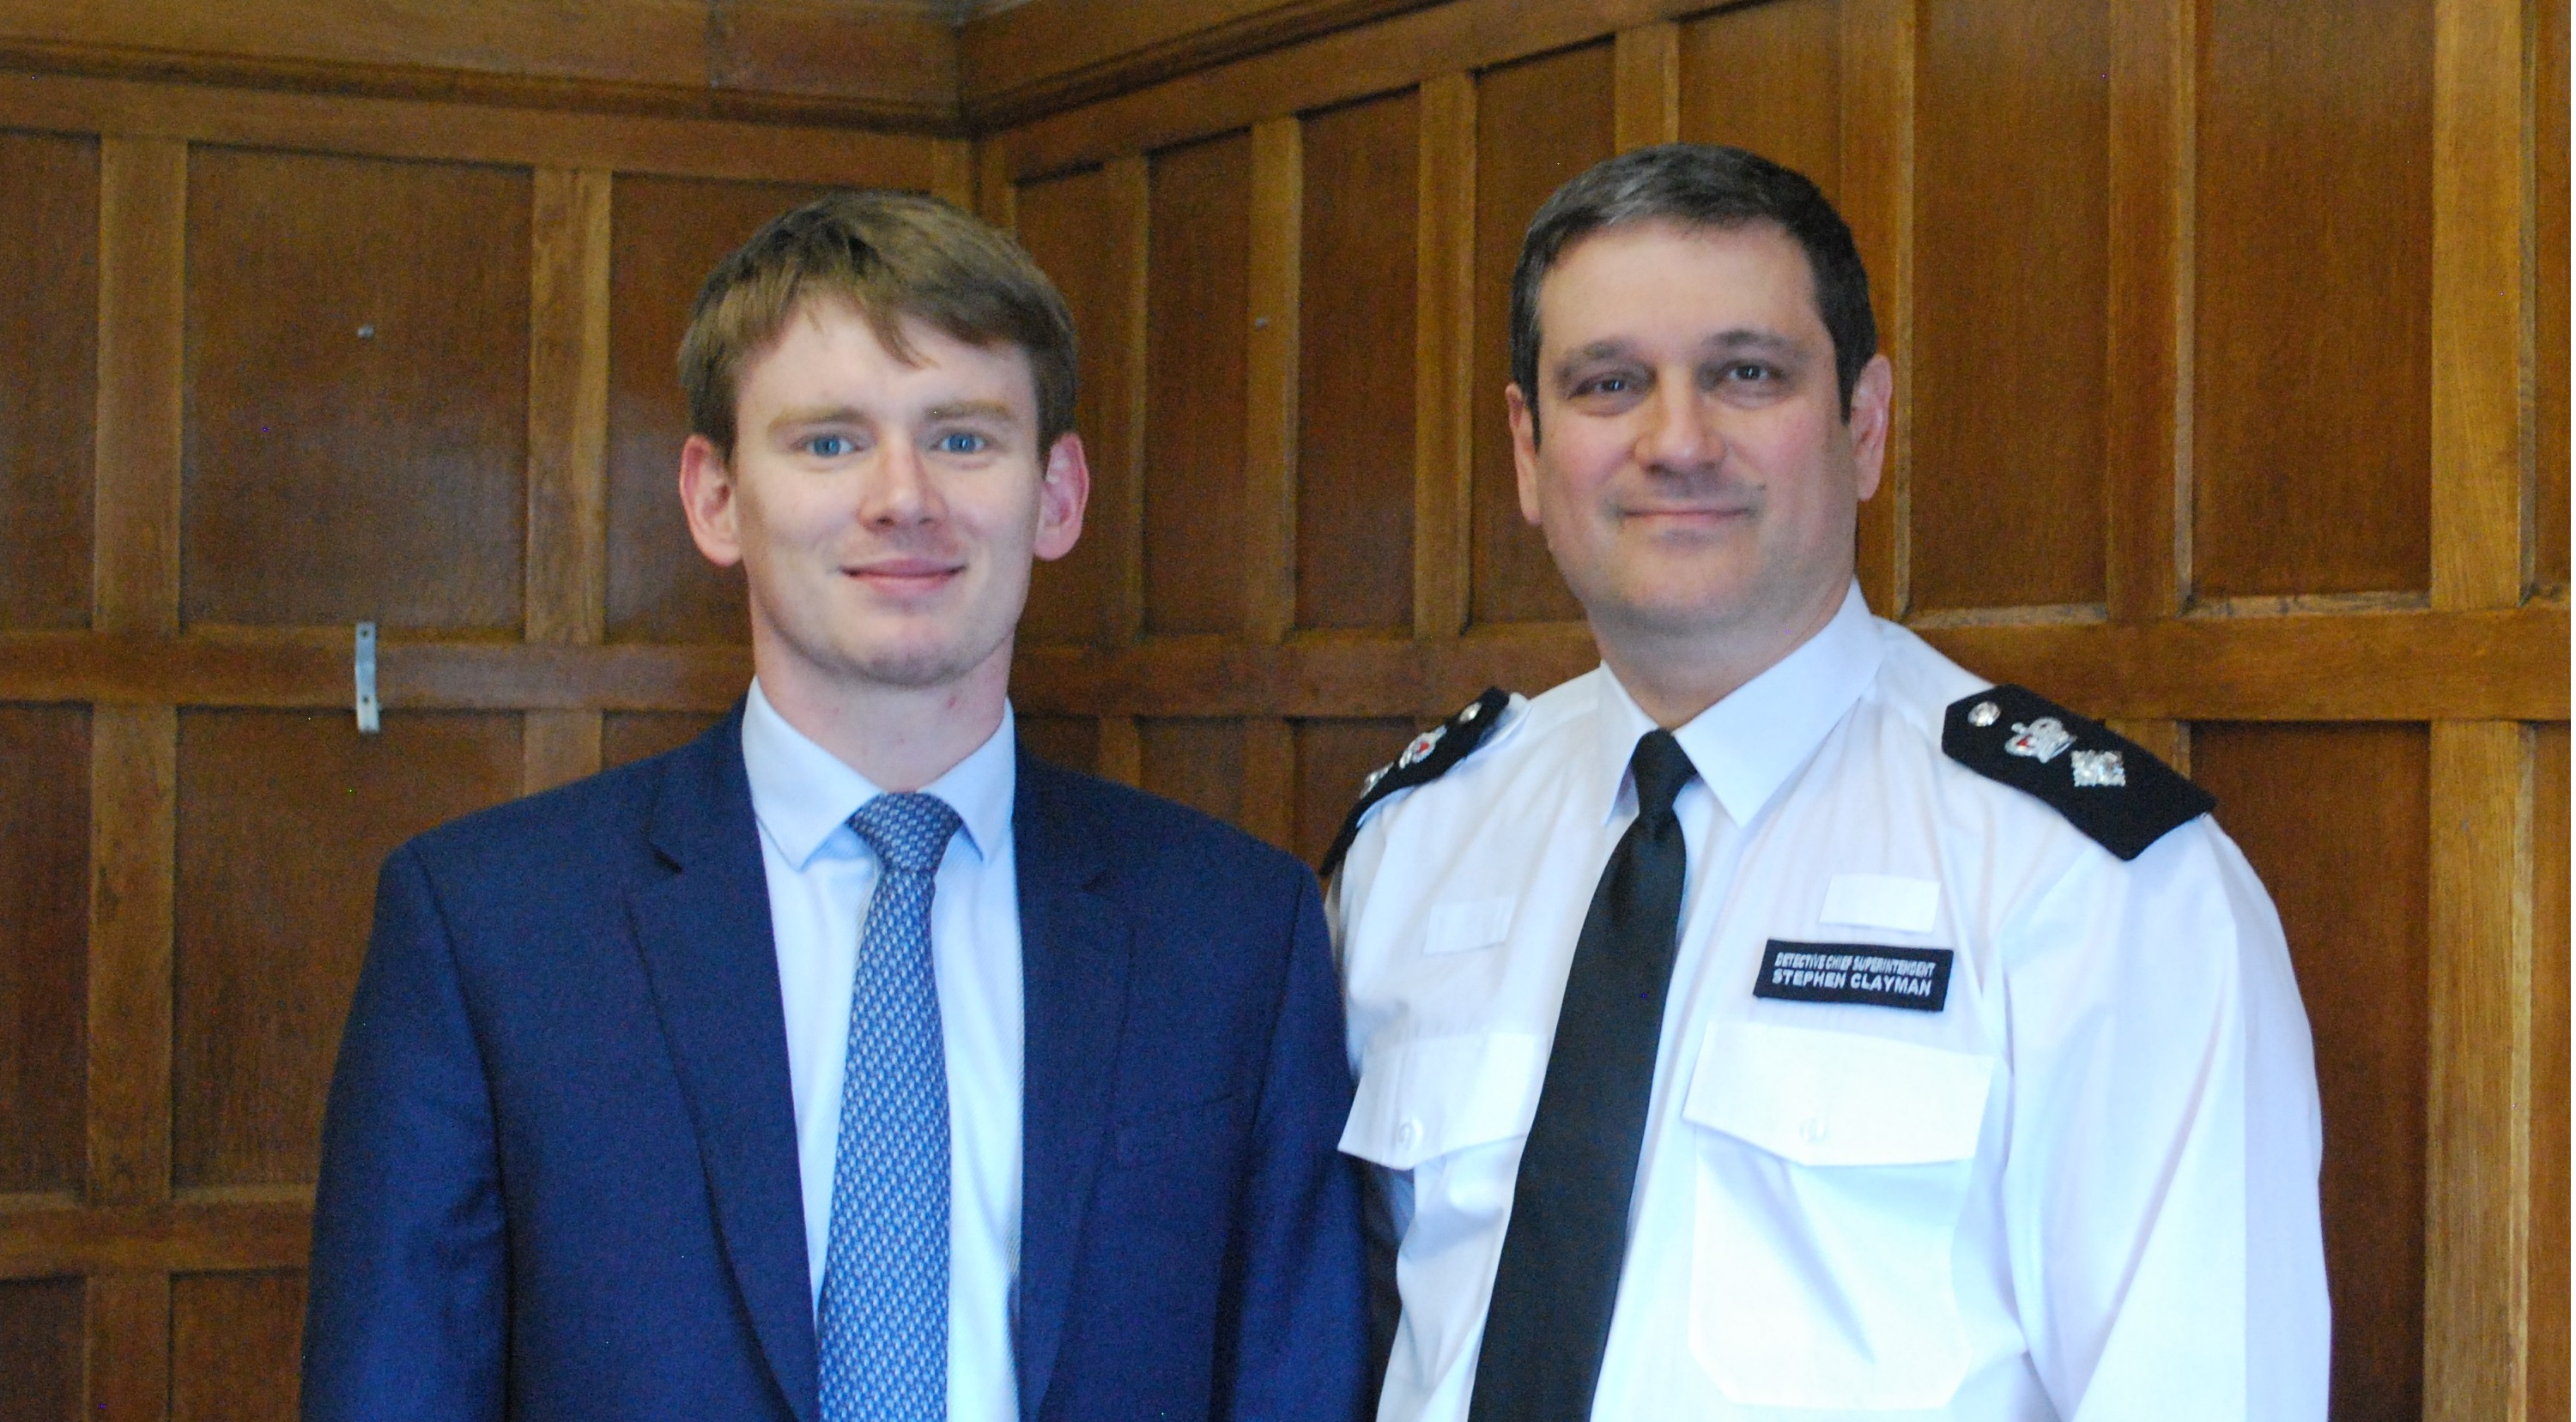 Leader and borough commander discuss tackling crime